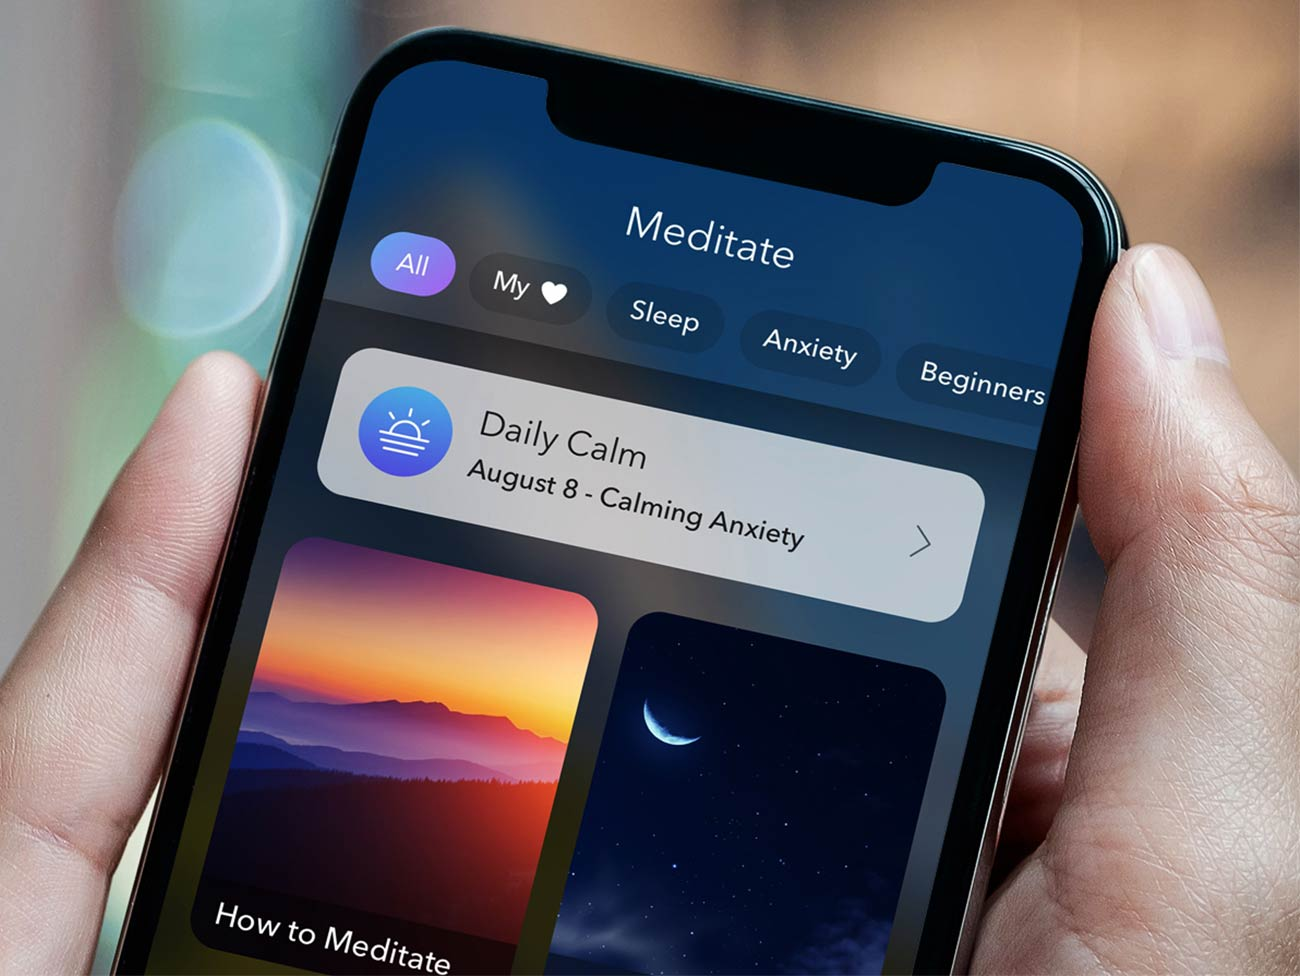 Calm app features on a mobile phone